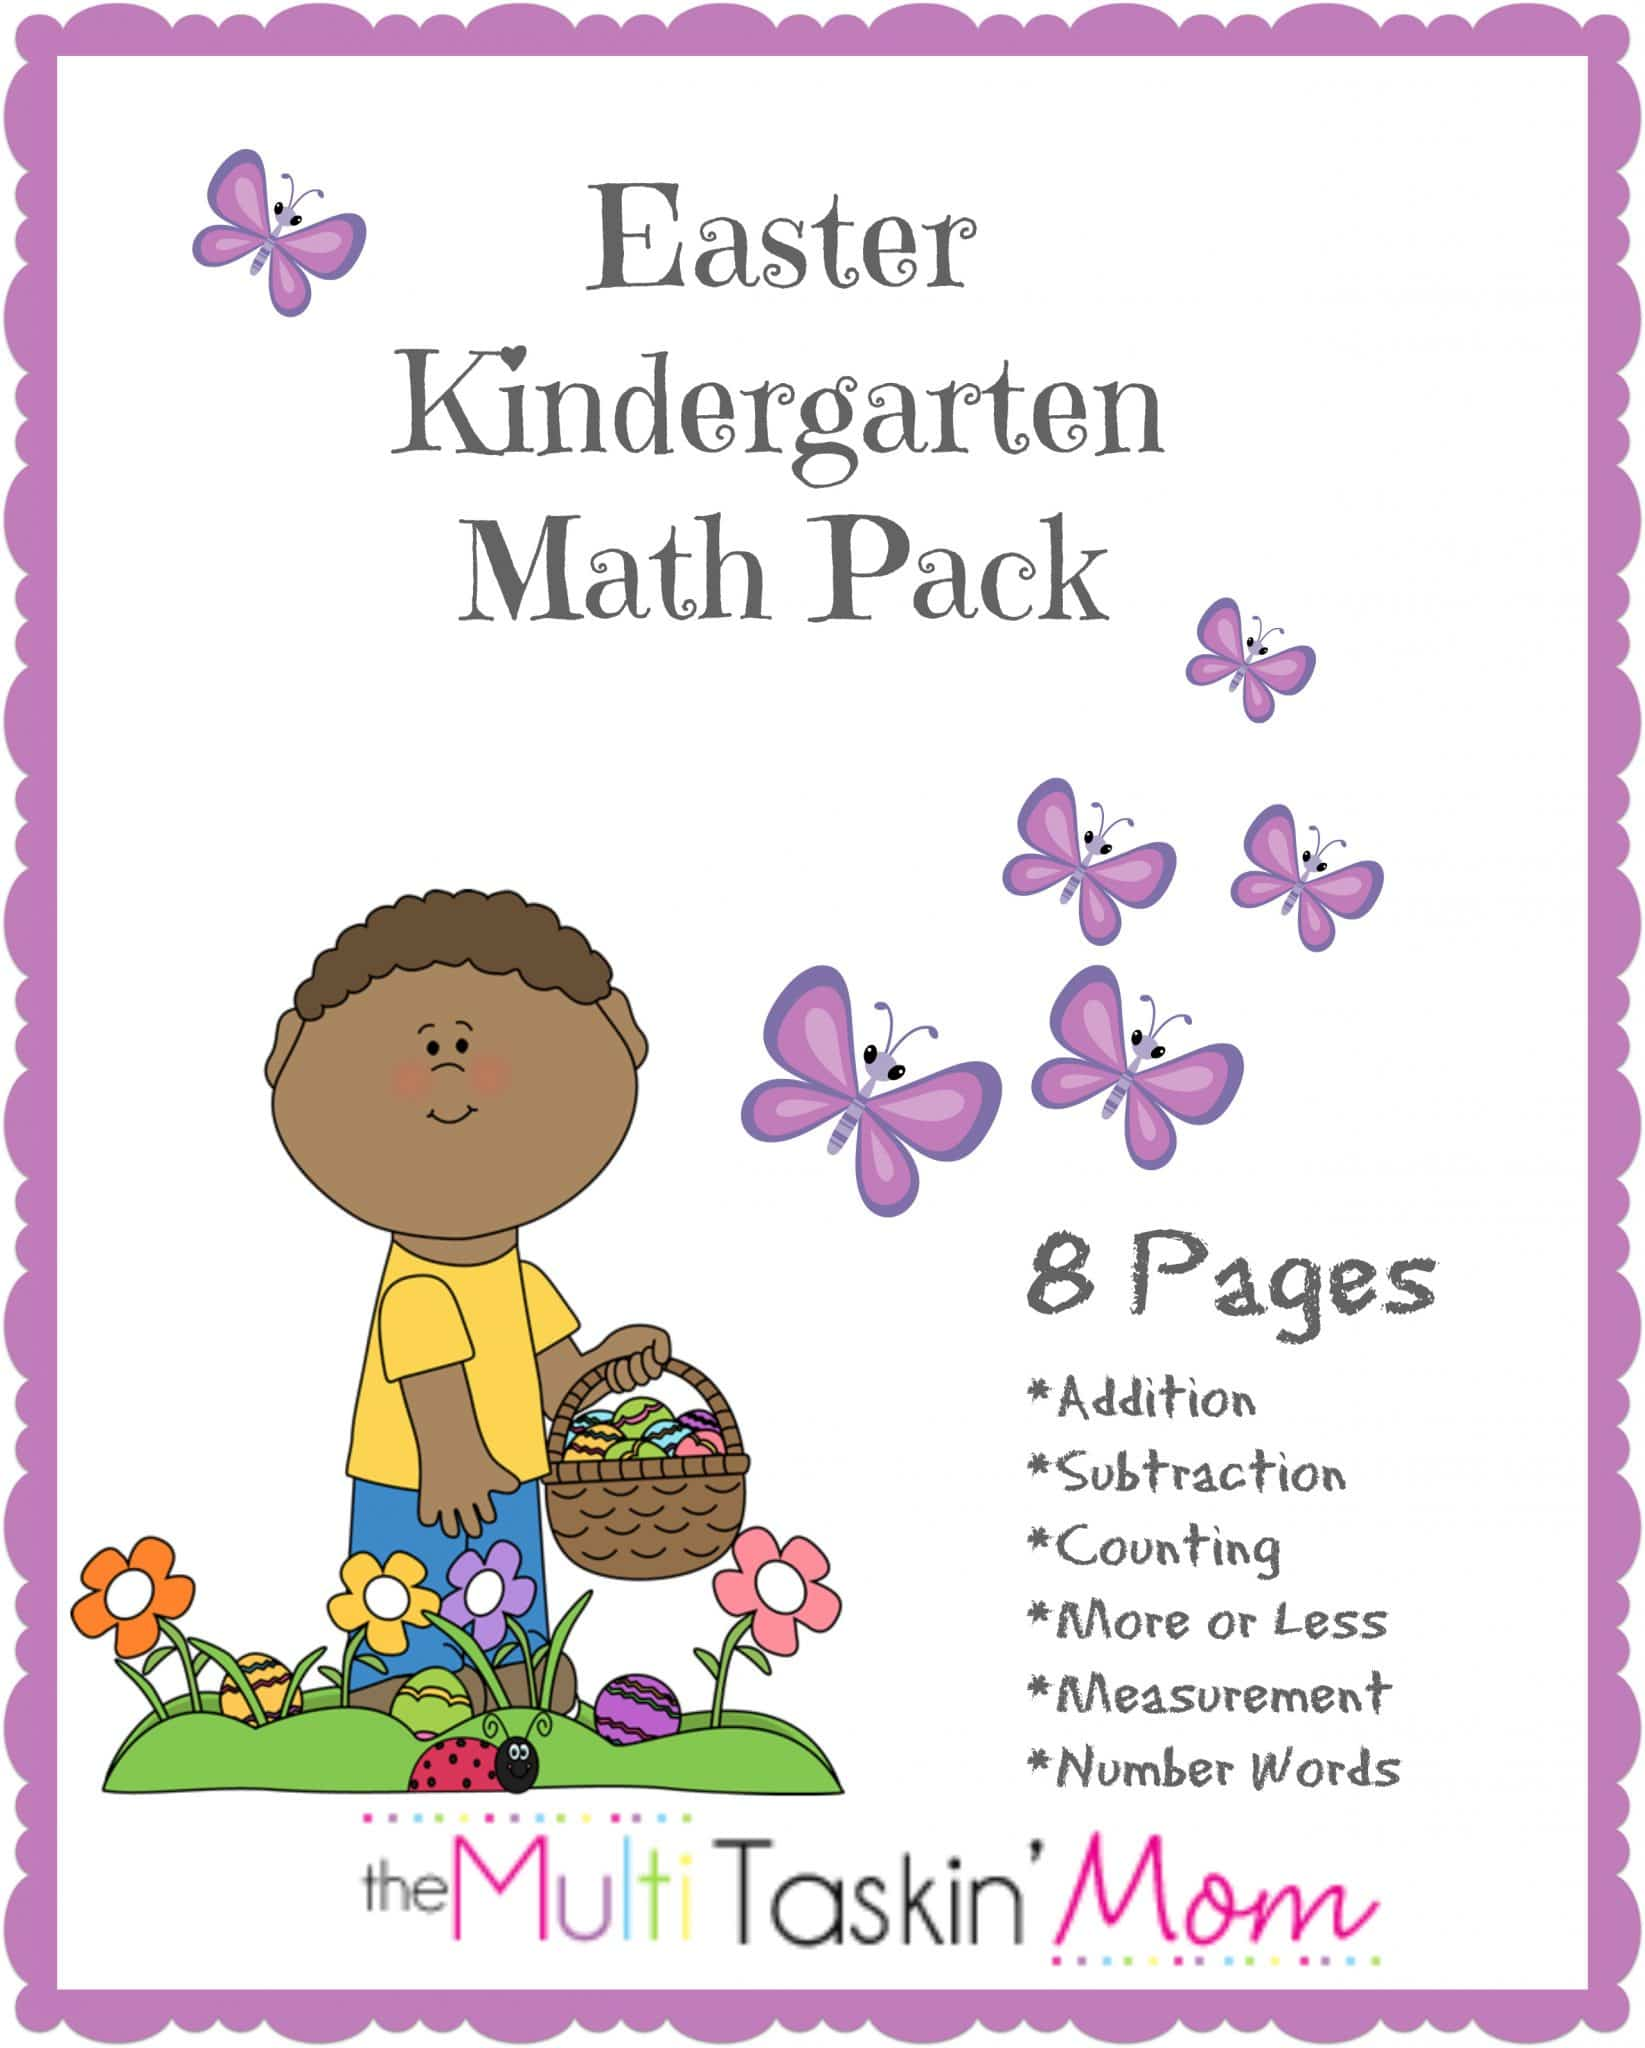 FREE Easter Printables: Kindergarten Math Pack! - The Multi Taskin ...